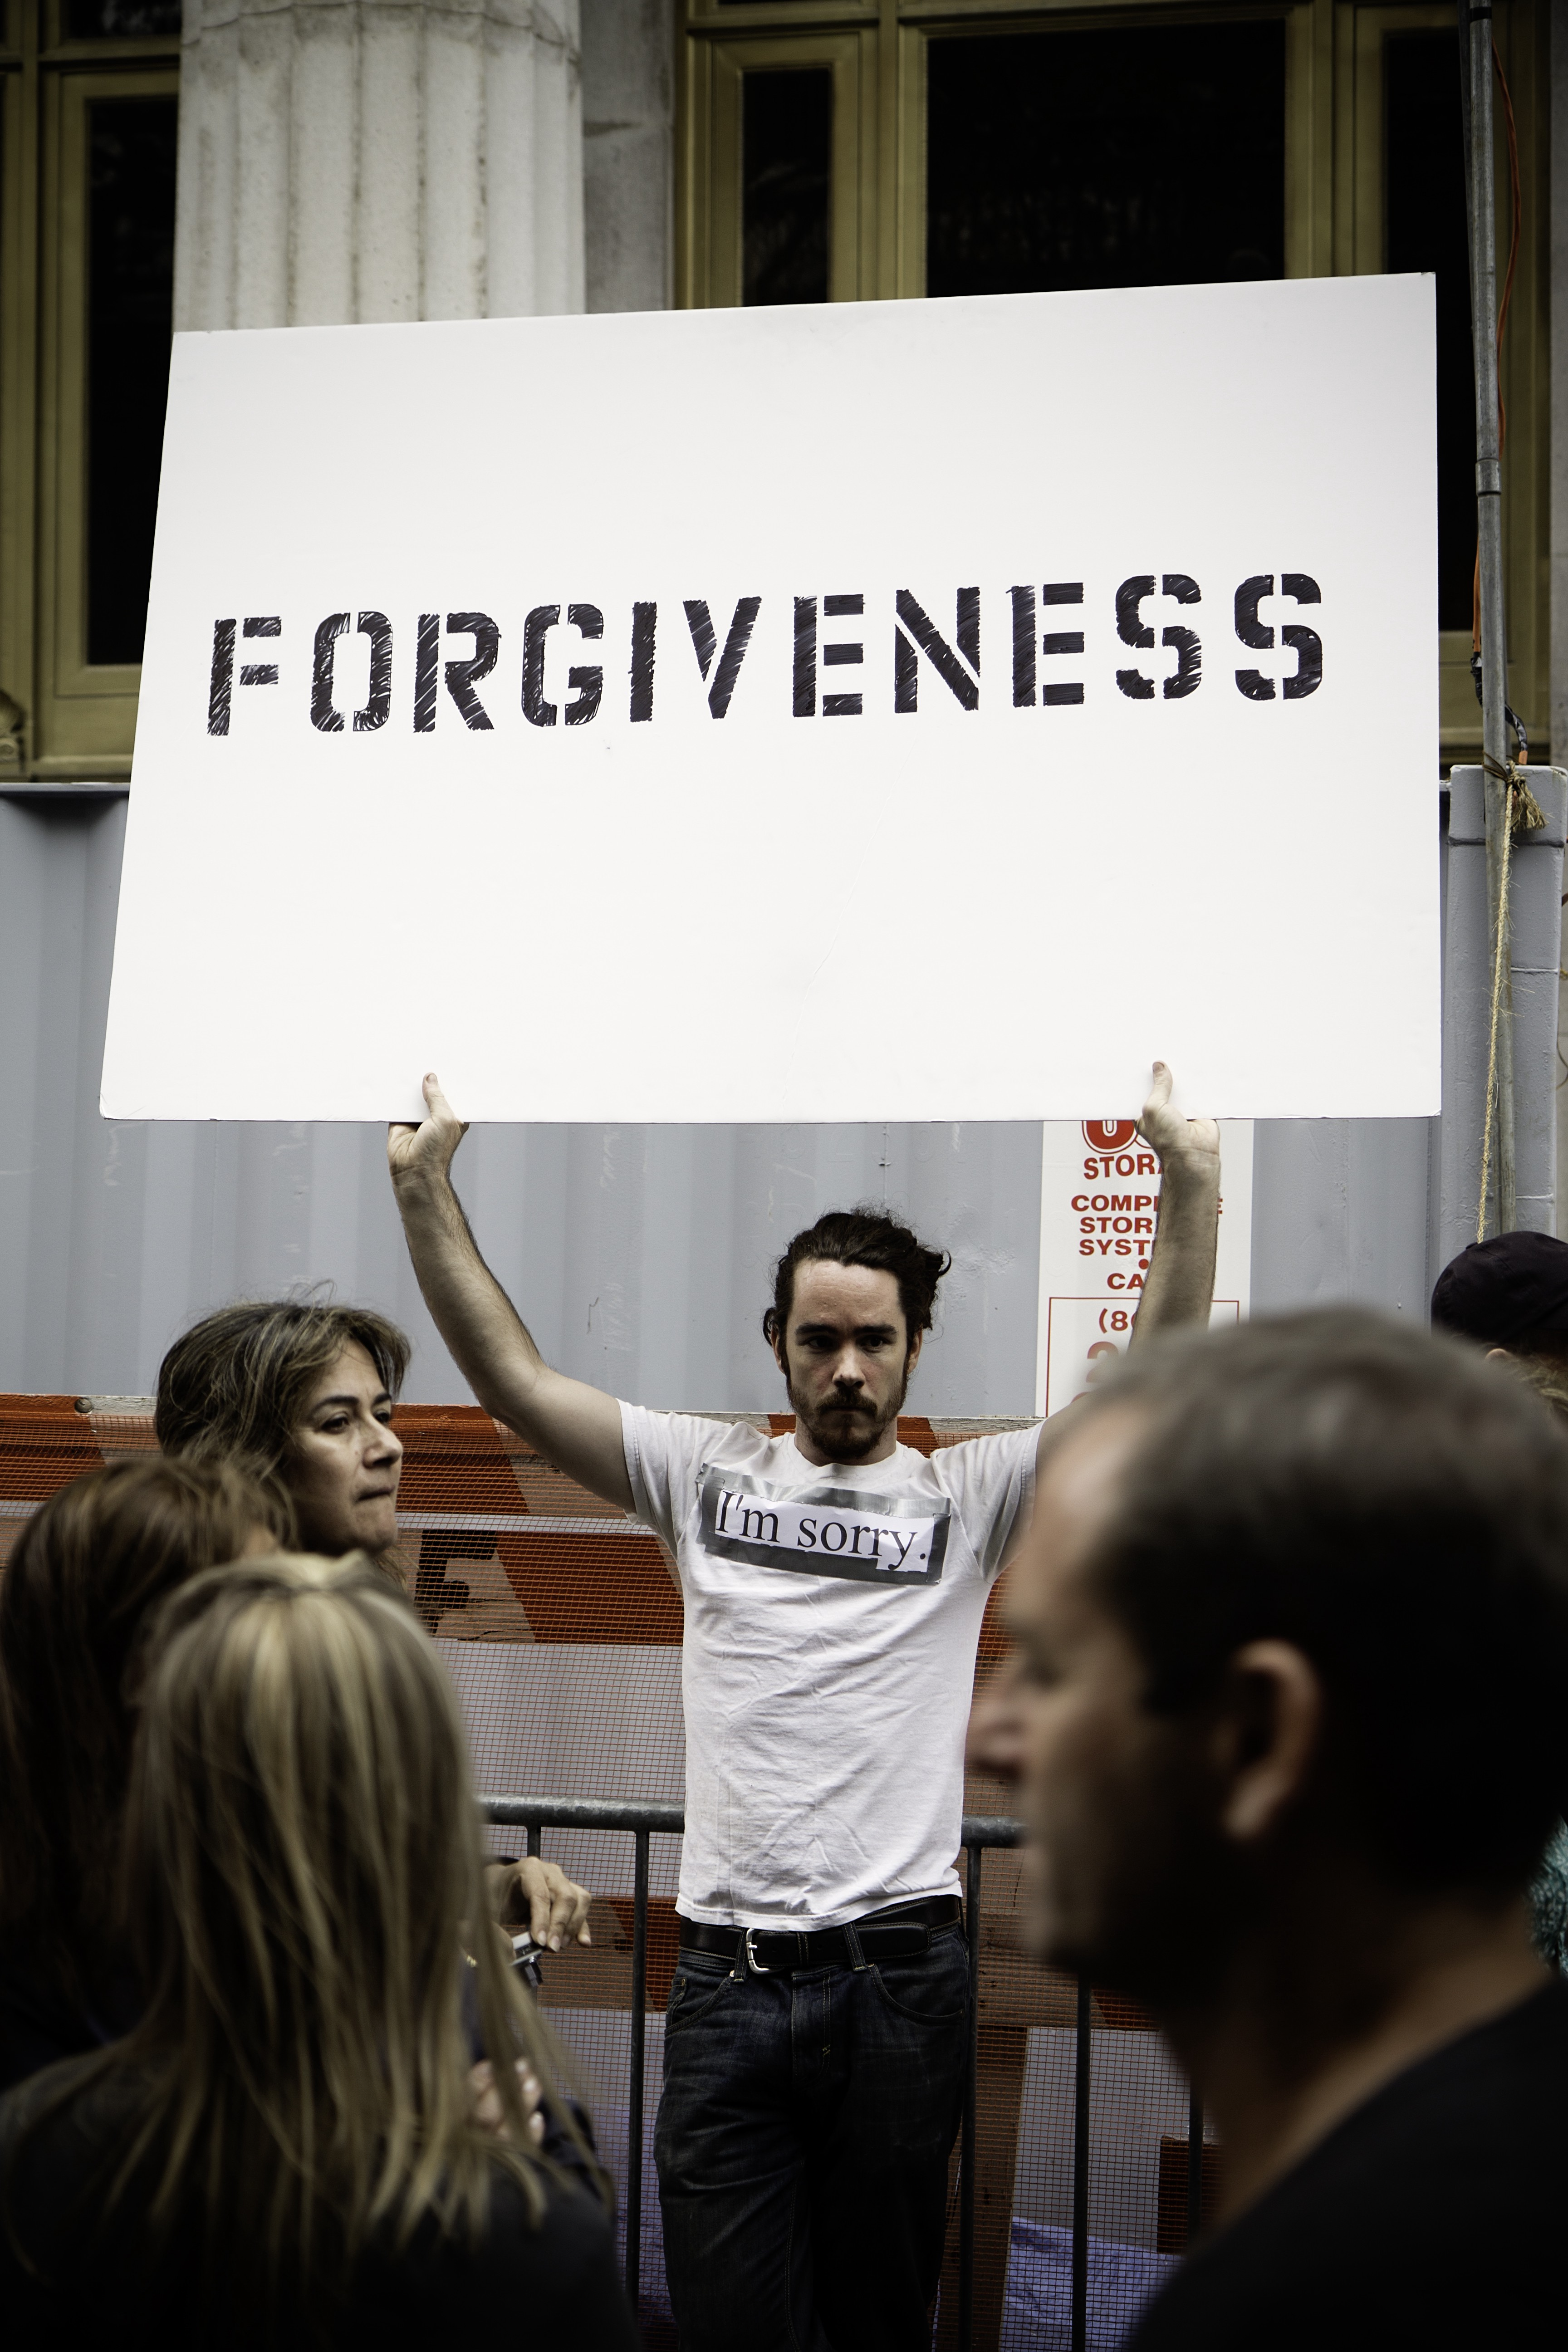 photo of man holding 'forgiveness' sign on mickey markoff air sea exec post re forgiveness.